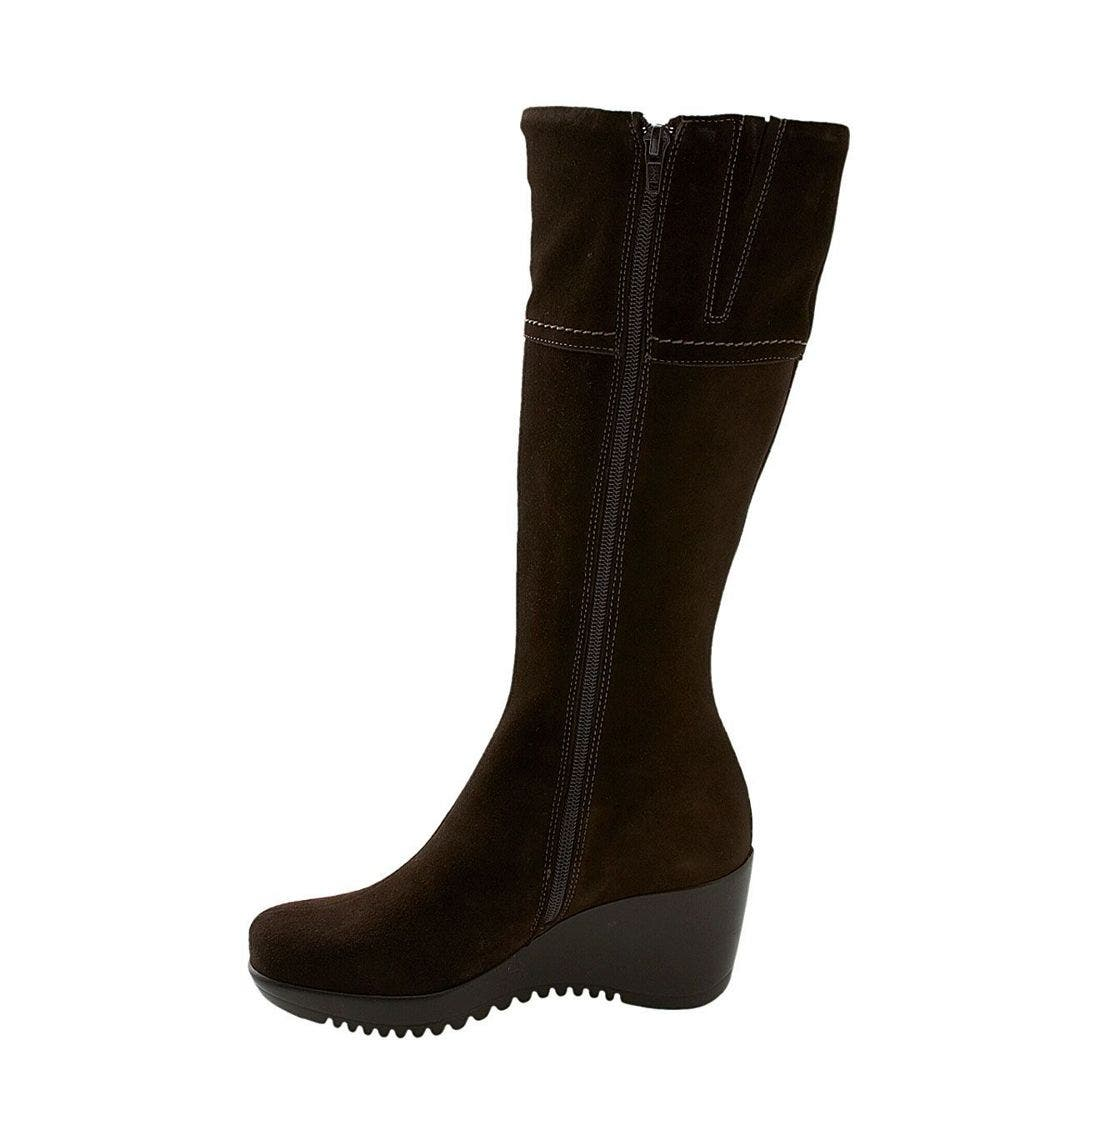 'Galaxy' Waterproof Boot,                             Alternate thumbnail 4, color,                             BRS